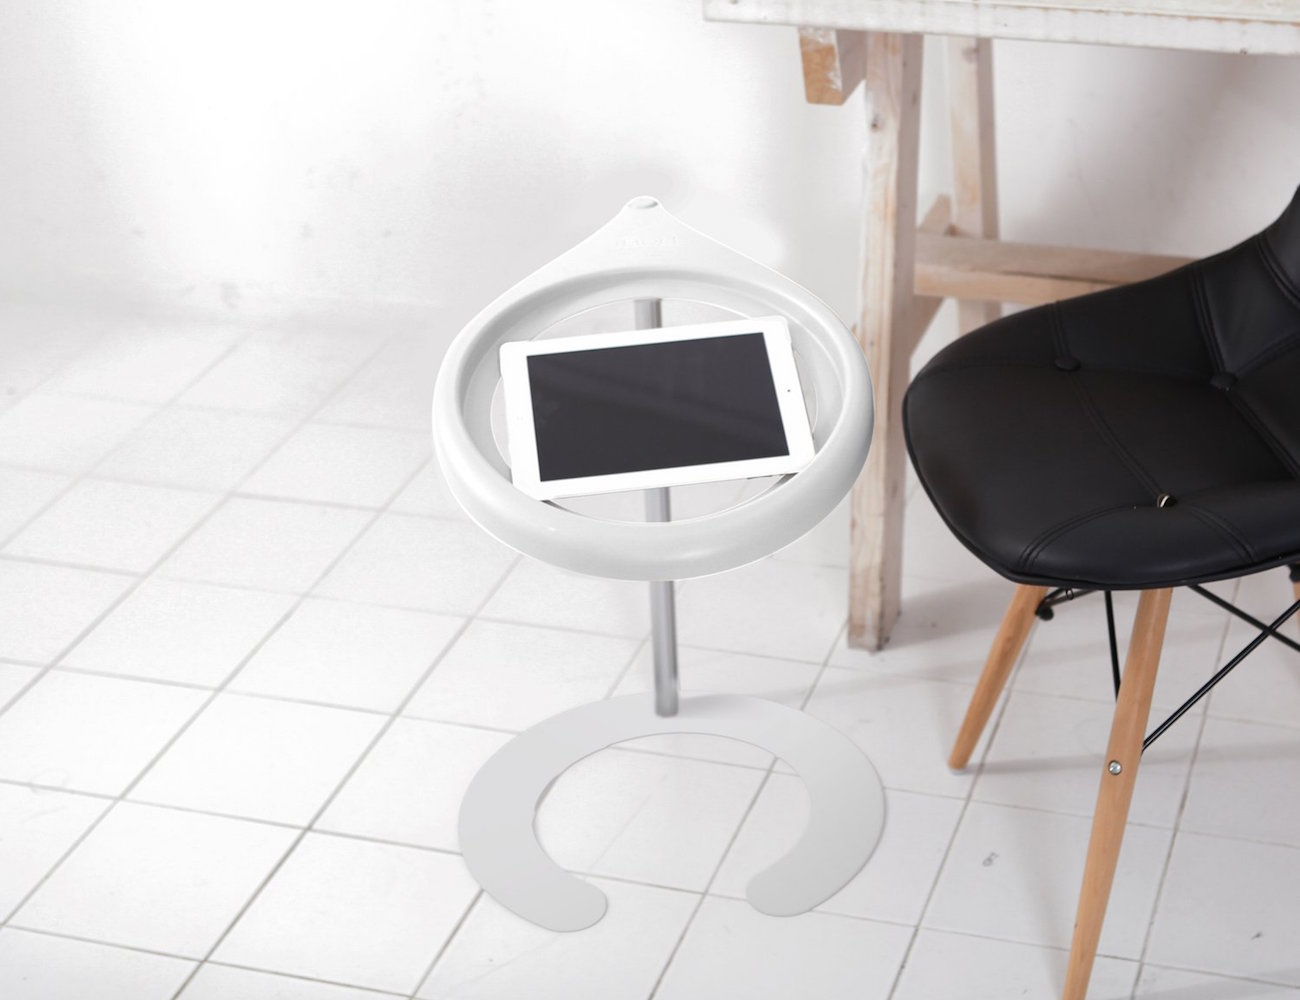 LABC-iBed-Tablet-Stand-02